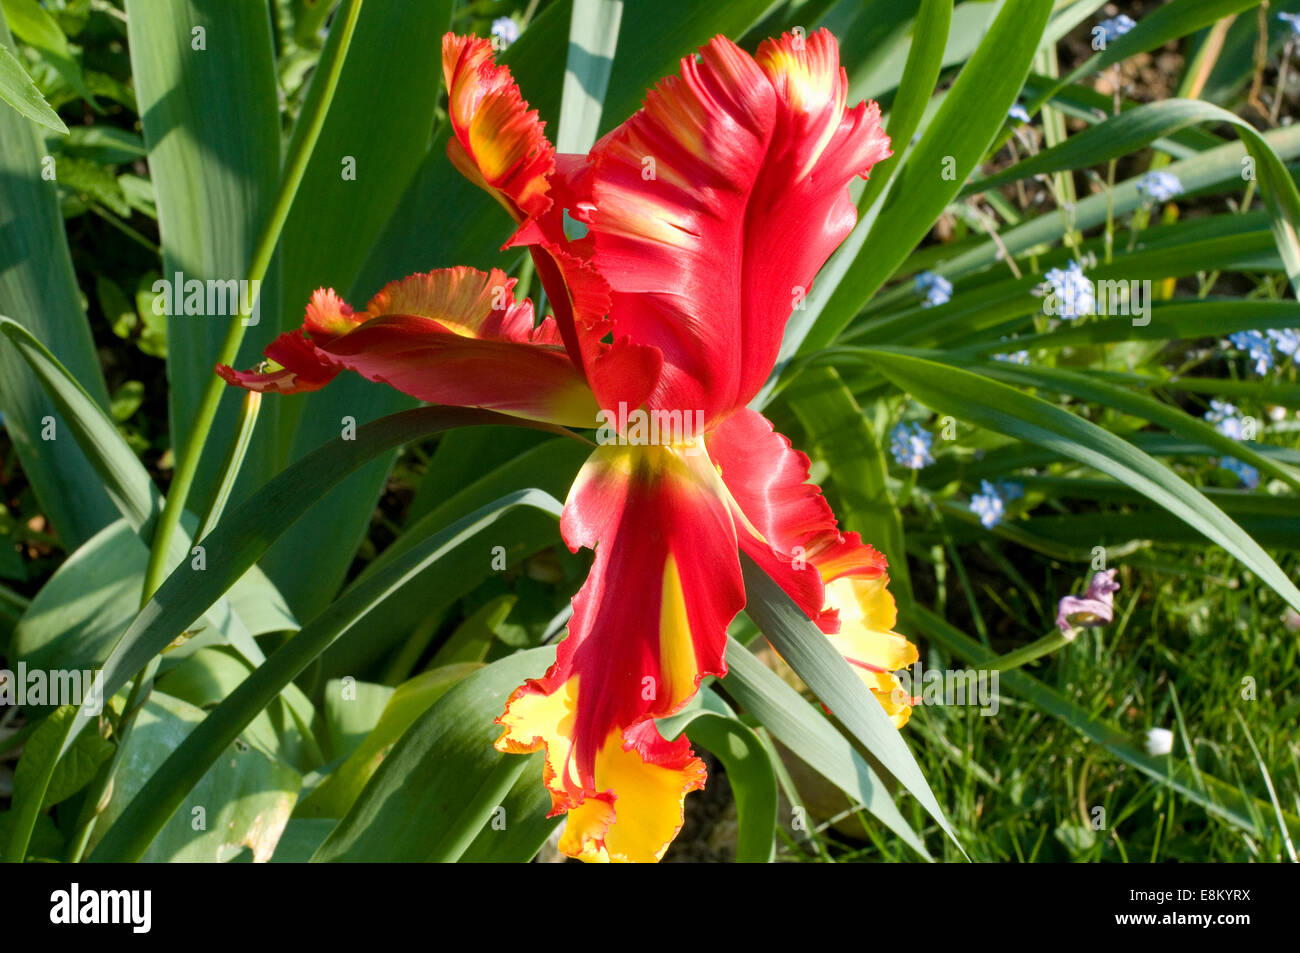 Ornamental yellow red Tulip flower. Variegated colors produced by ...